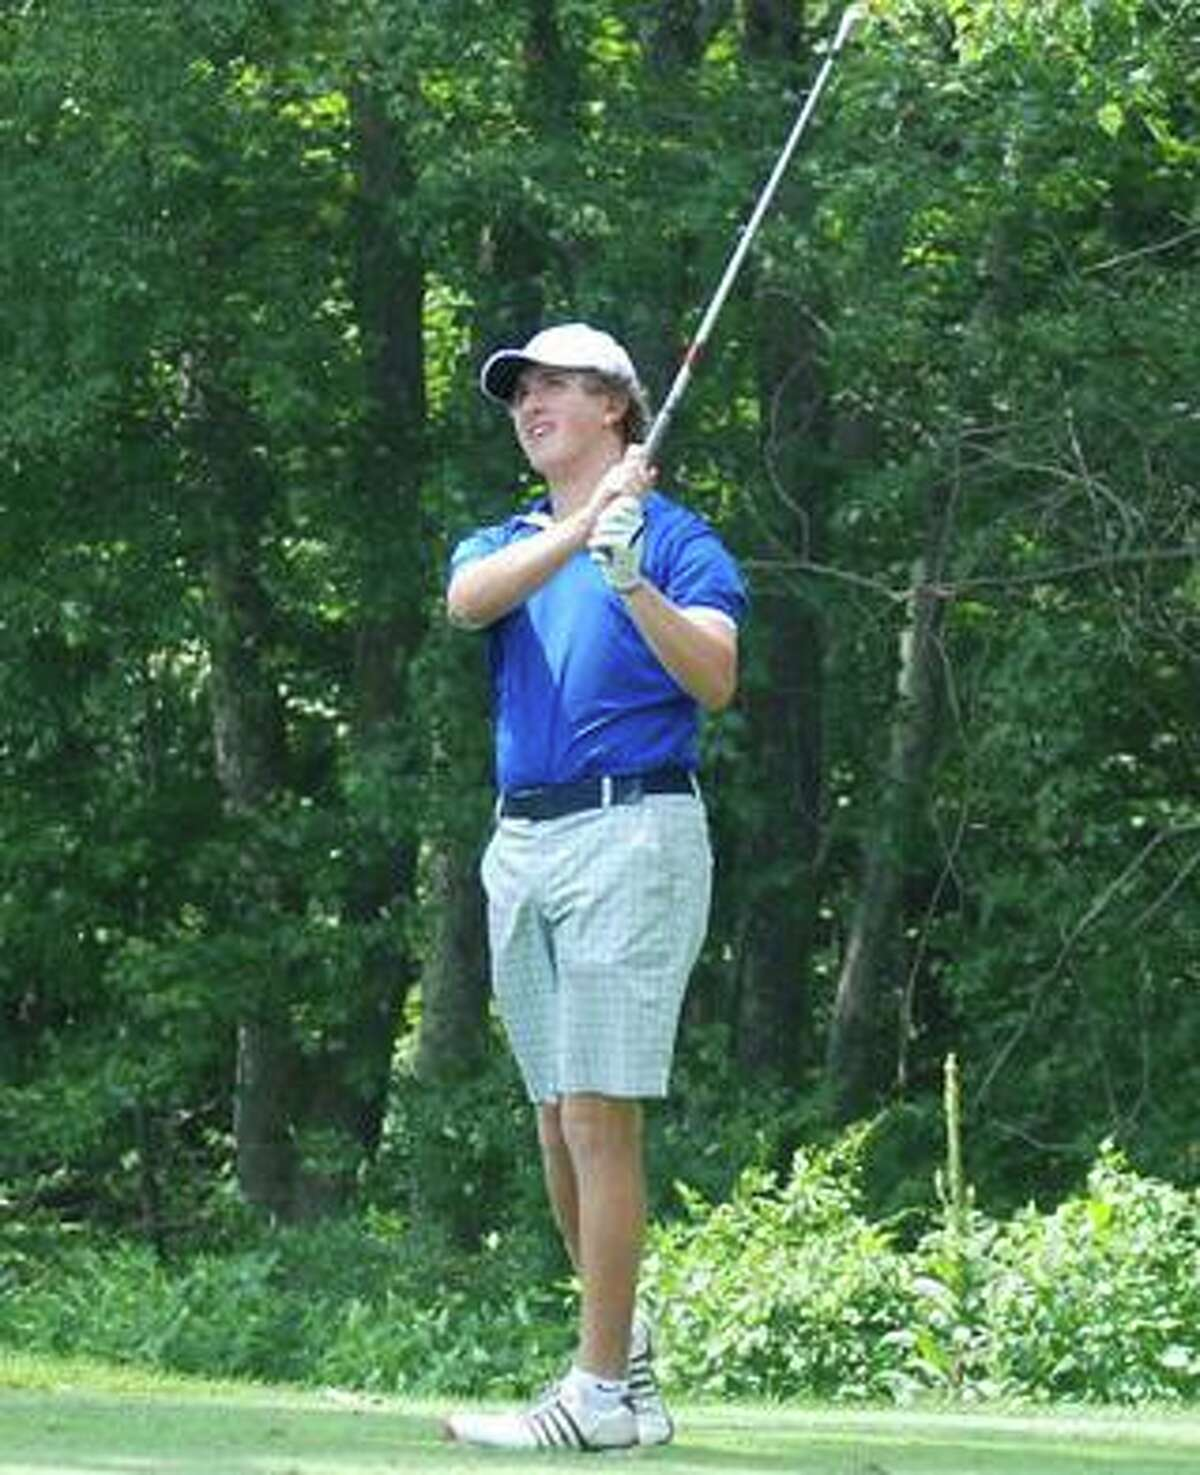 Newtown's Trevor Hislop was faced with the tough decision of selecting between football and golf this fall. The senior chose golf.